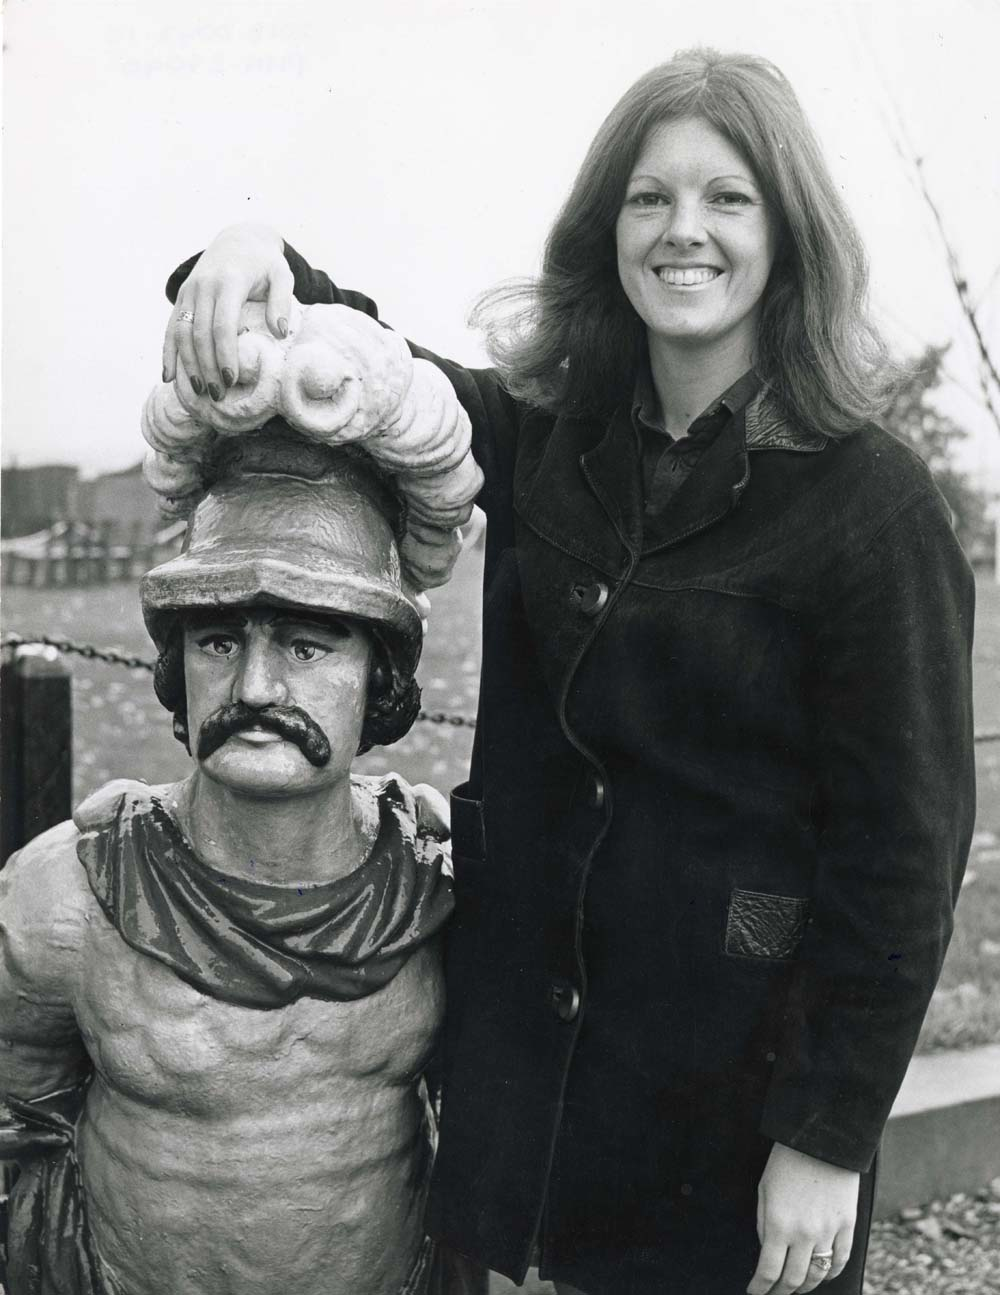 black and white photo of a woman with long hair posing with a ships figurehead